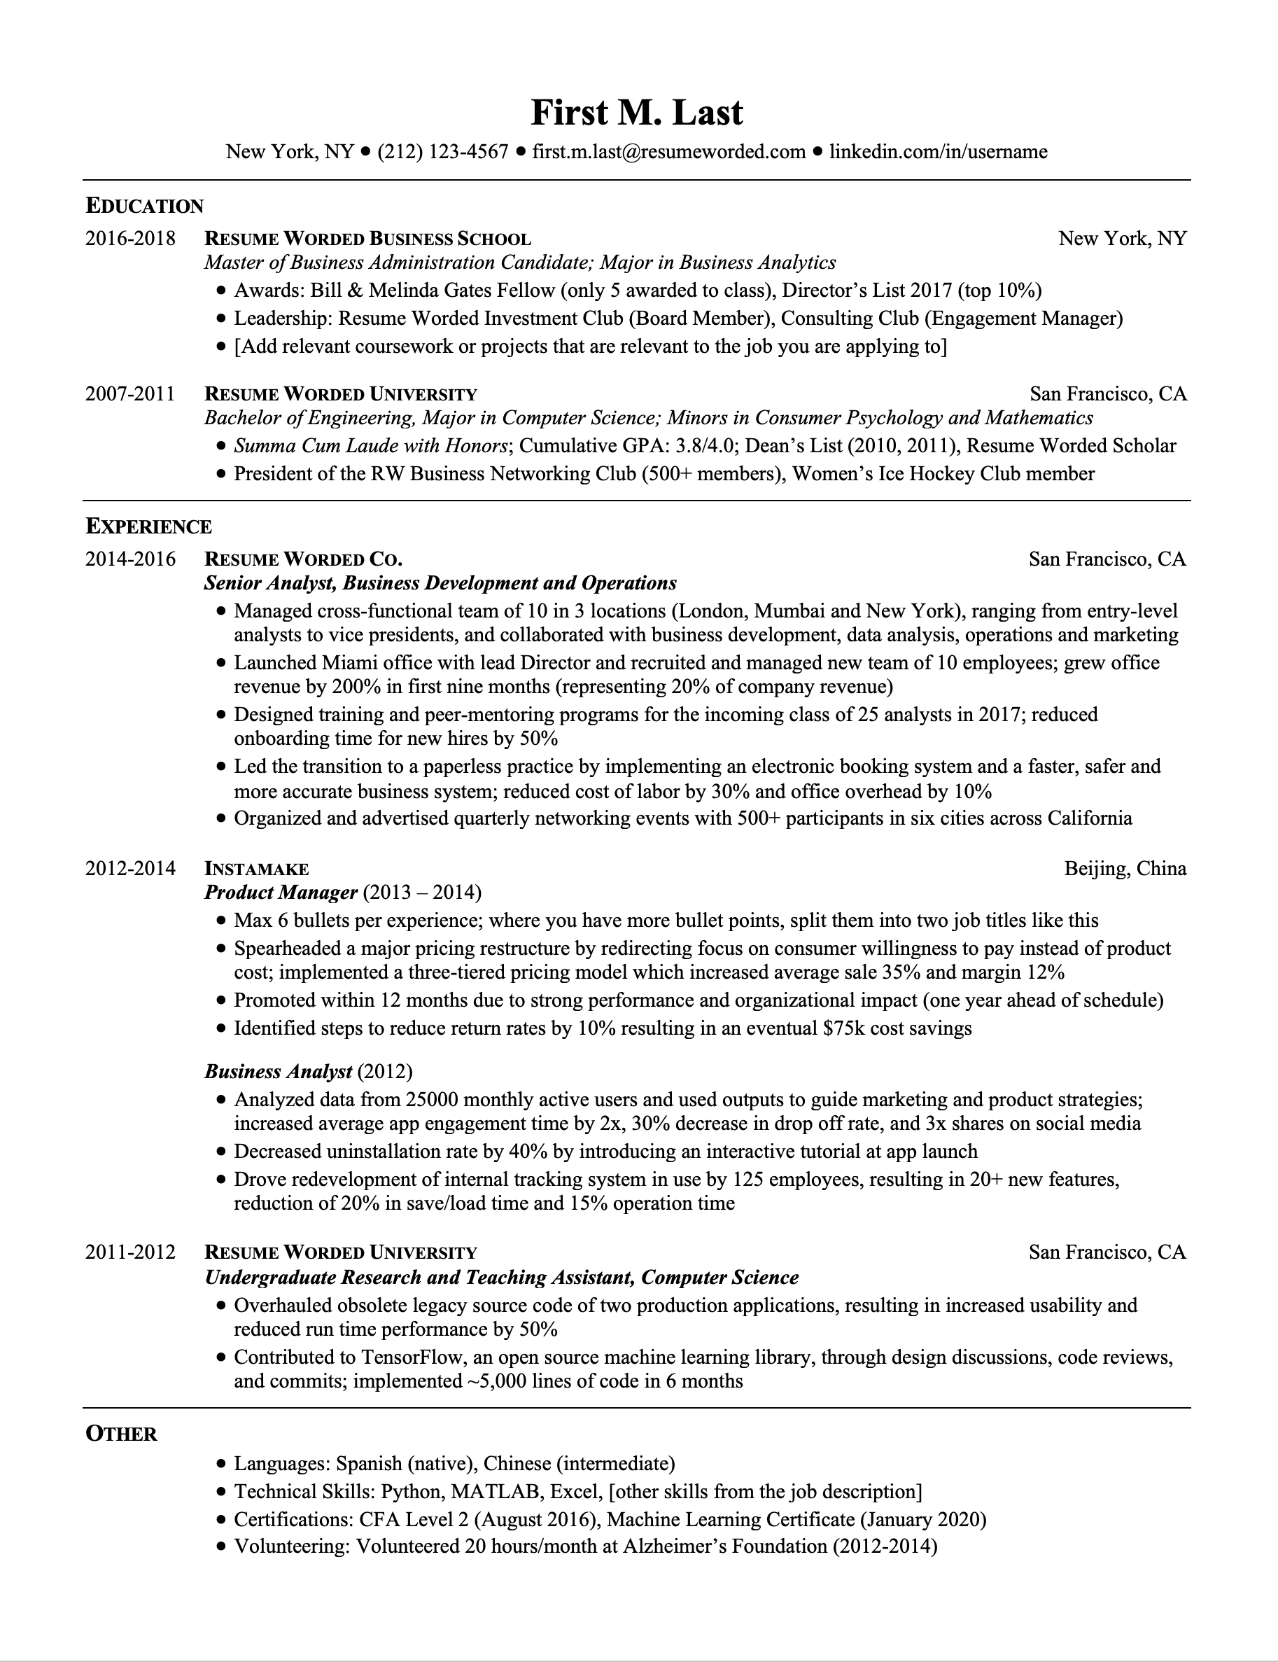 Downloadable ATS Ready Resume Templates for College Students